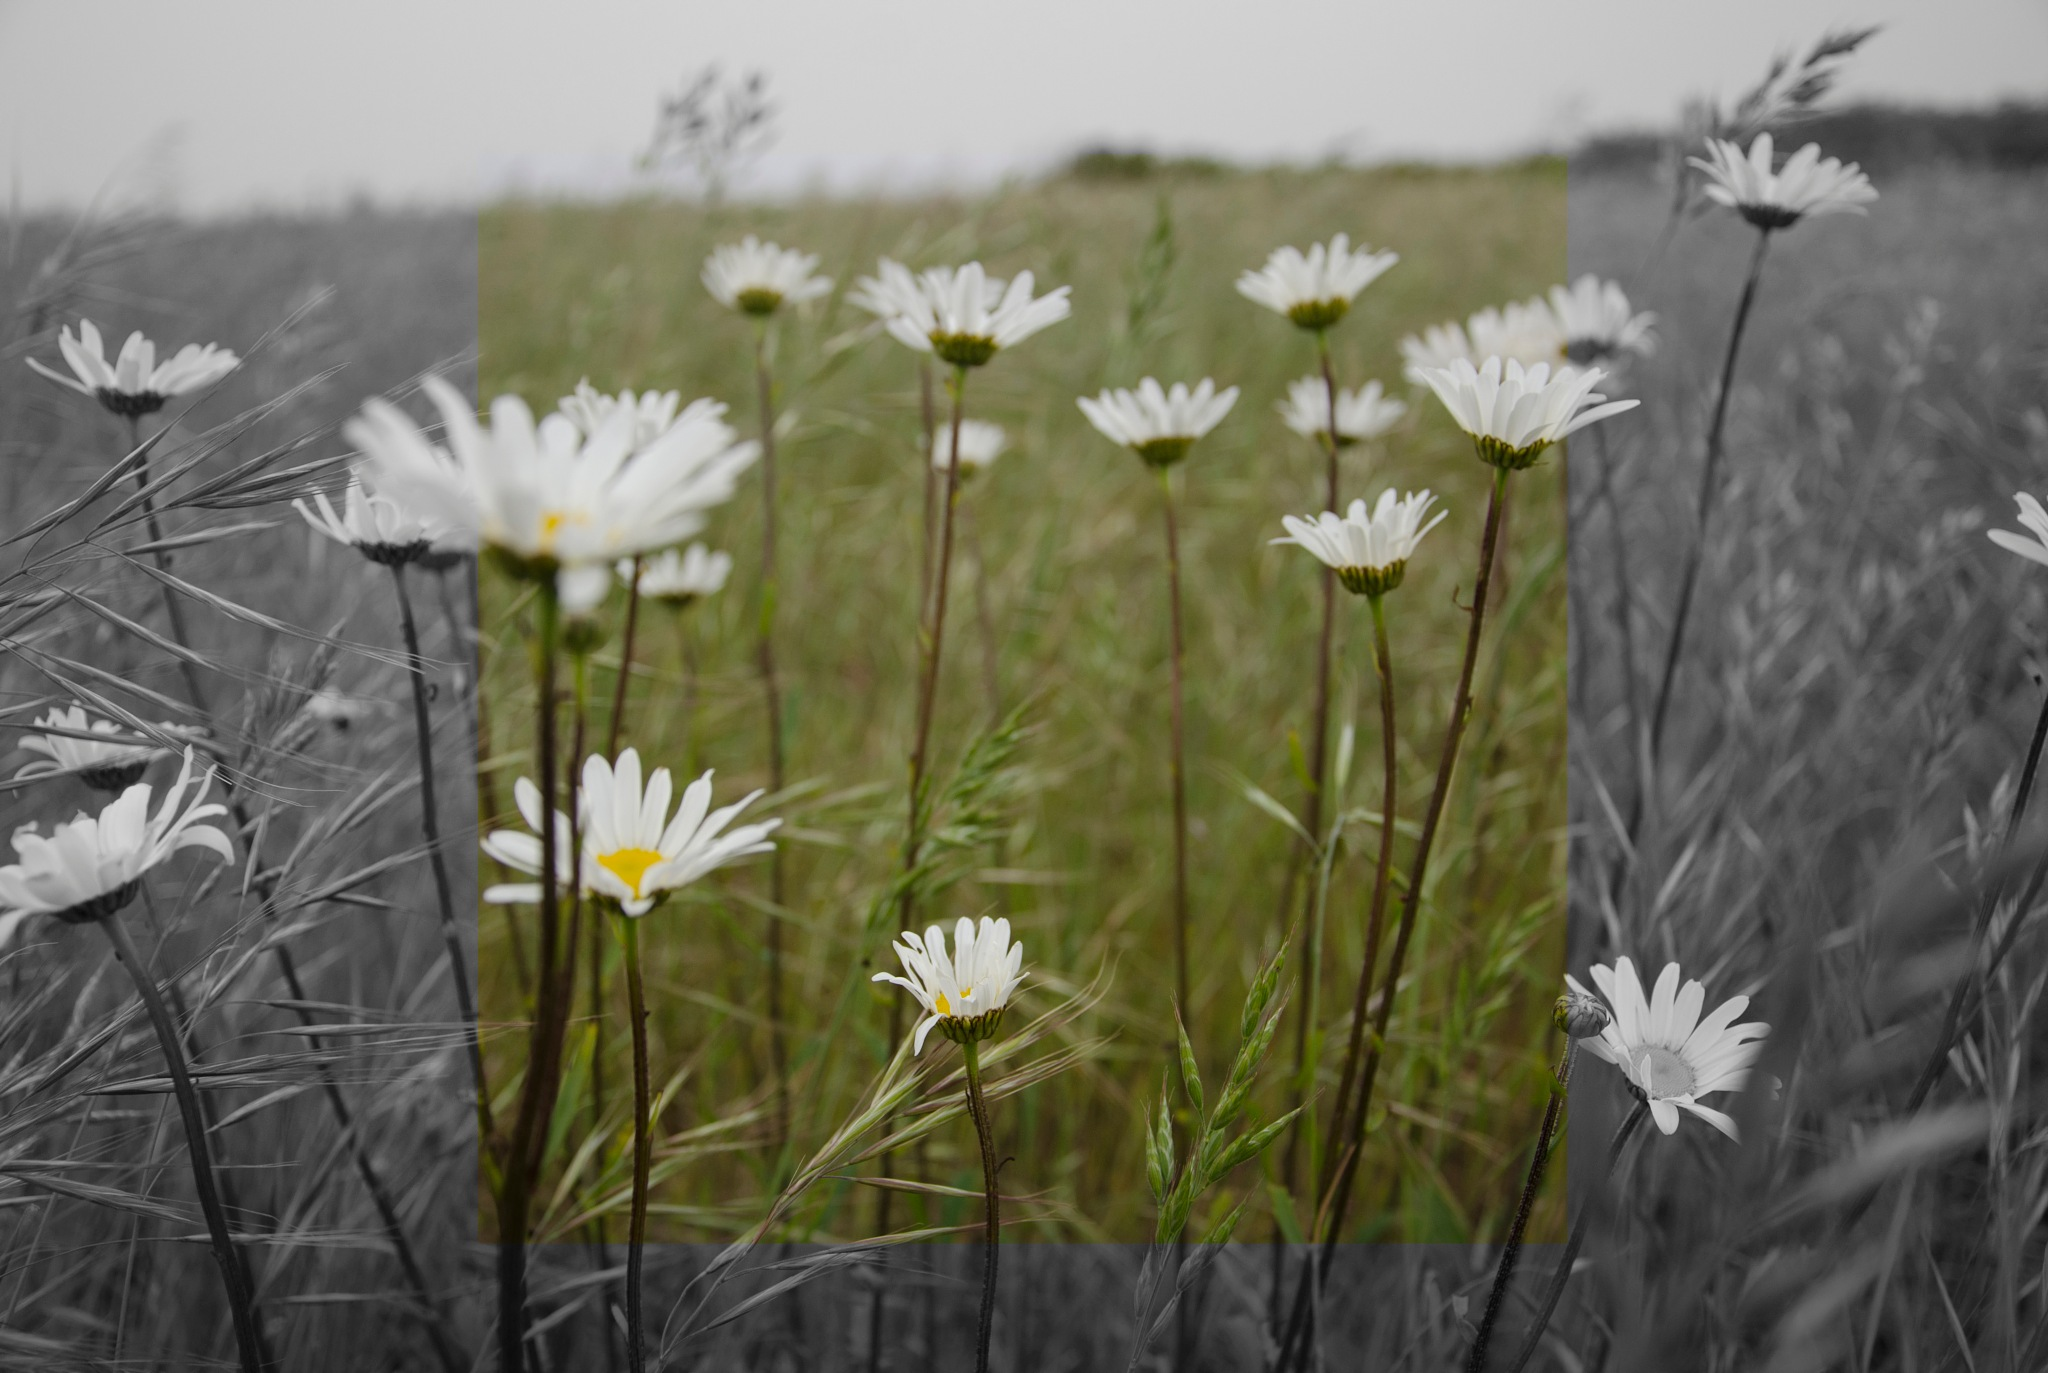 Wild flowers (reworked) by ChrisBowers